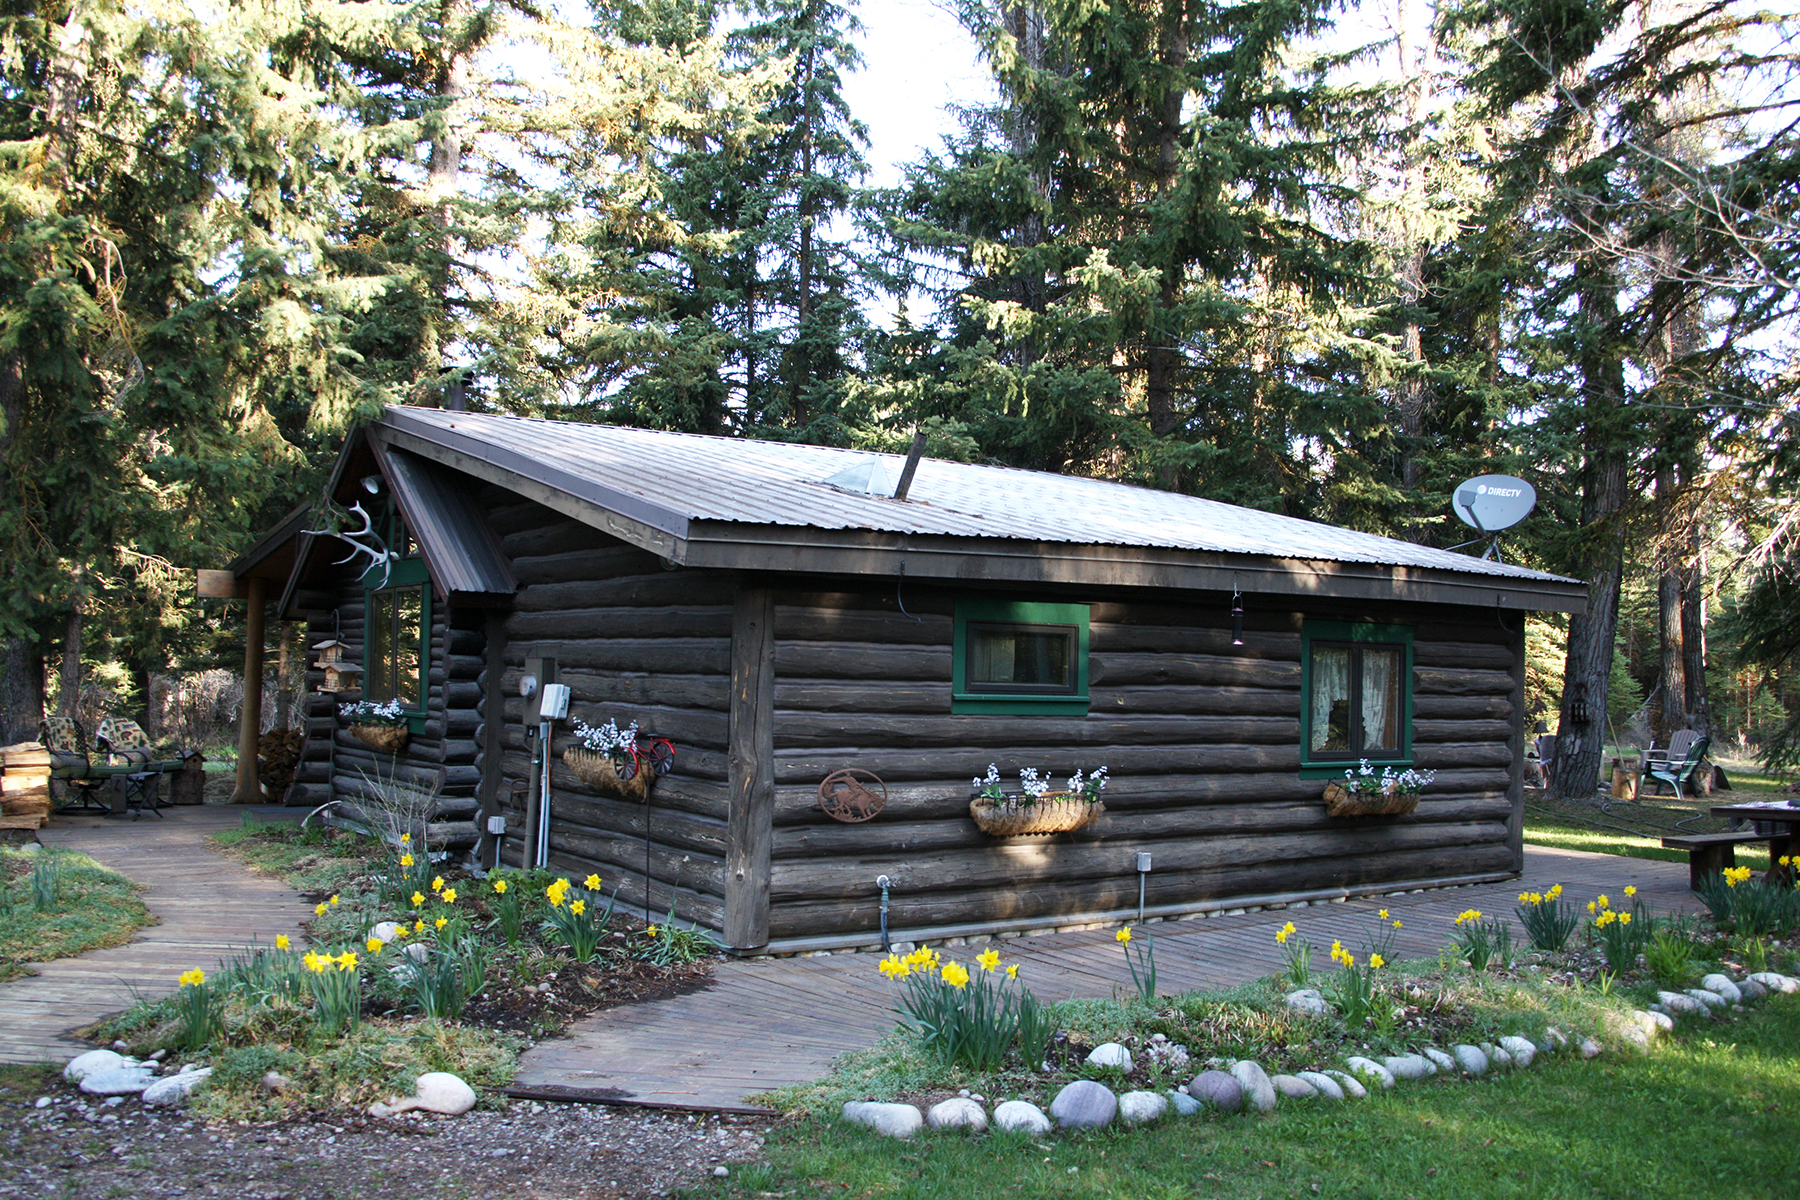 Property for Sale at 6605 N SNAKE RIVER WOODS DR Jackson, Wyoming 83001 United States